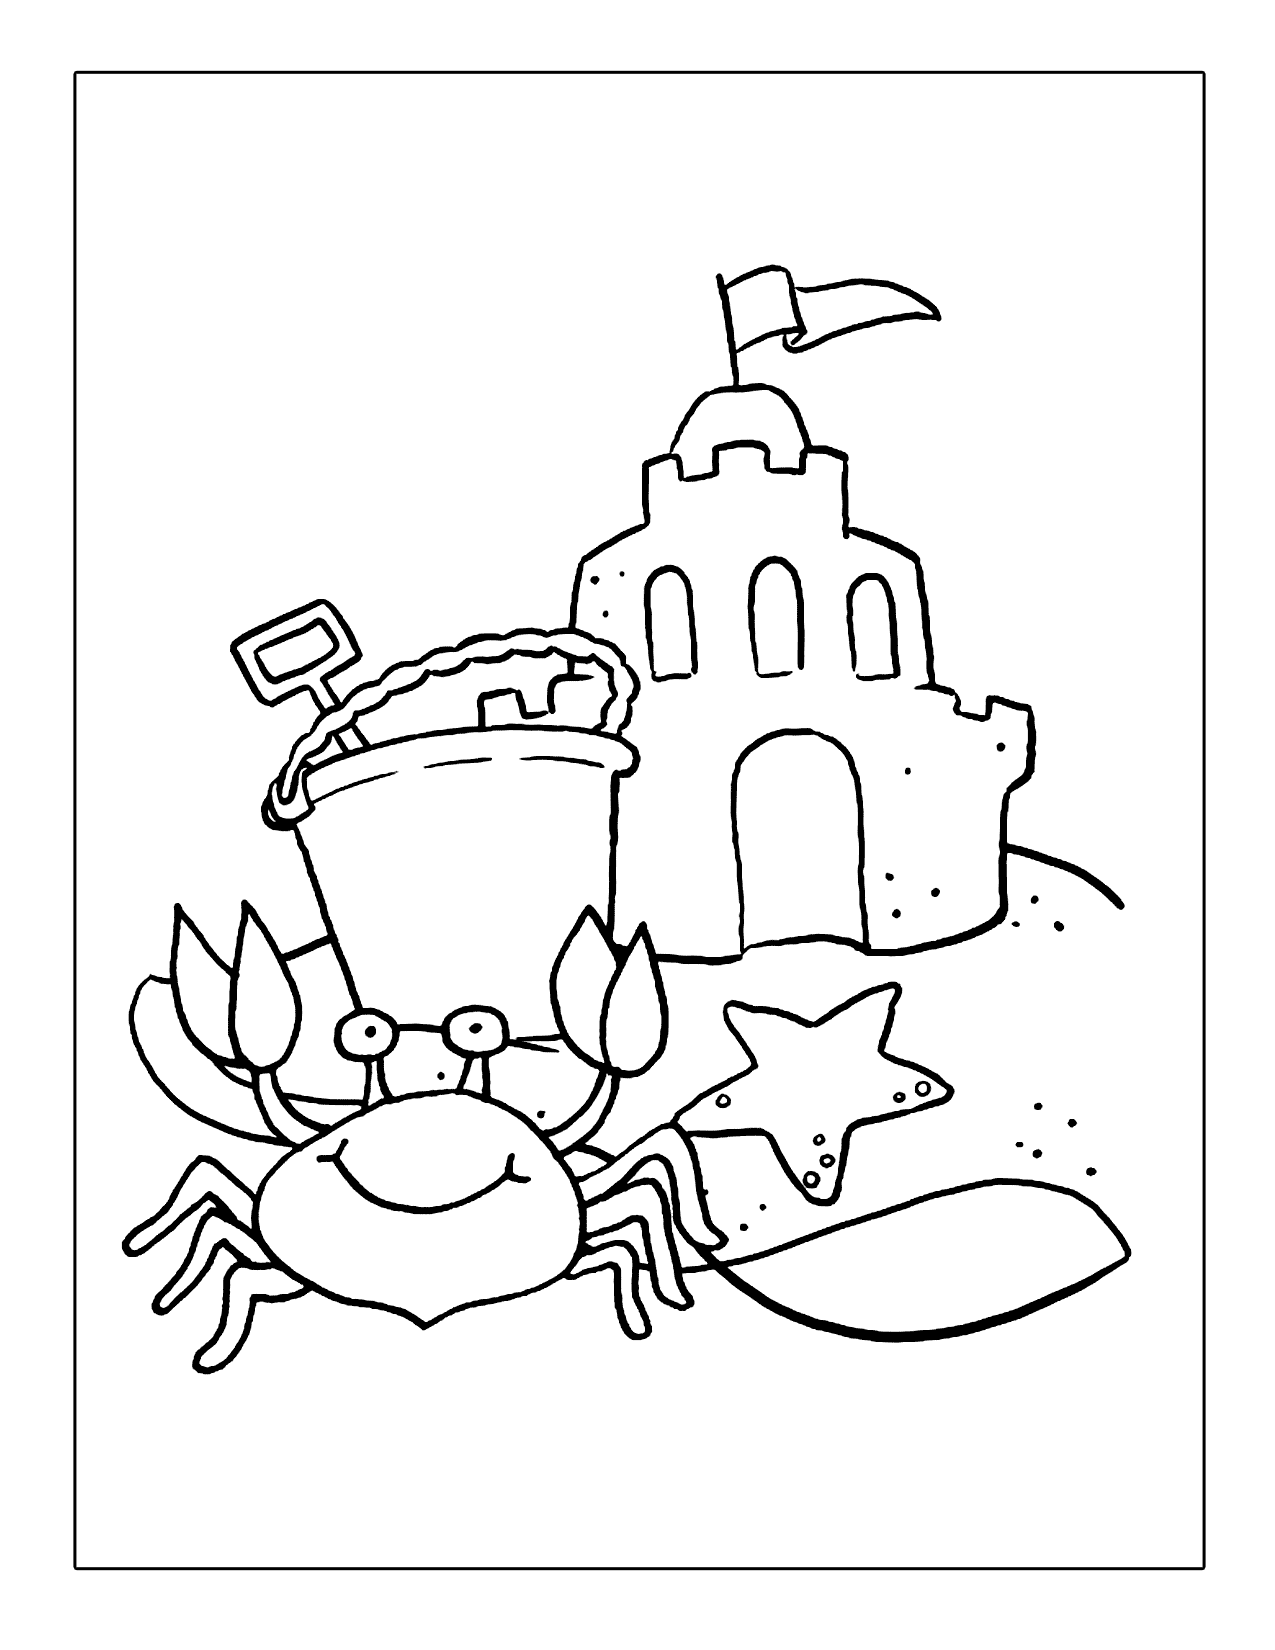 Cute Crab On The Beach Coloring Page